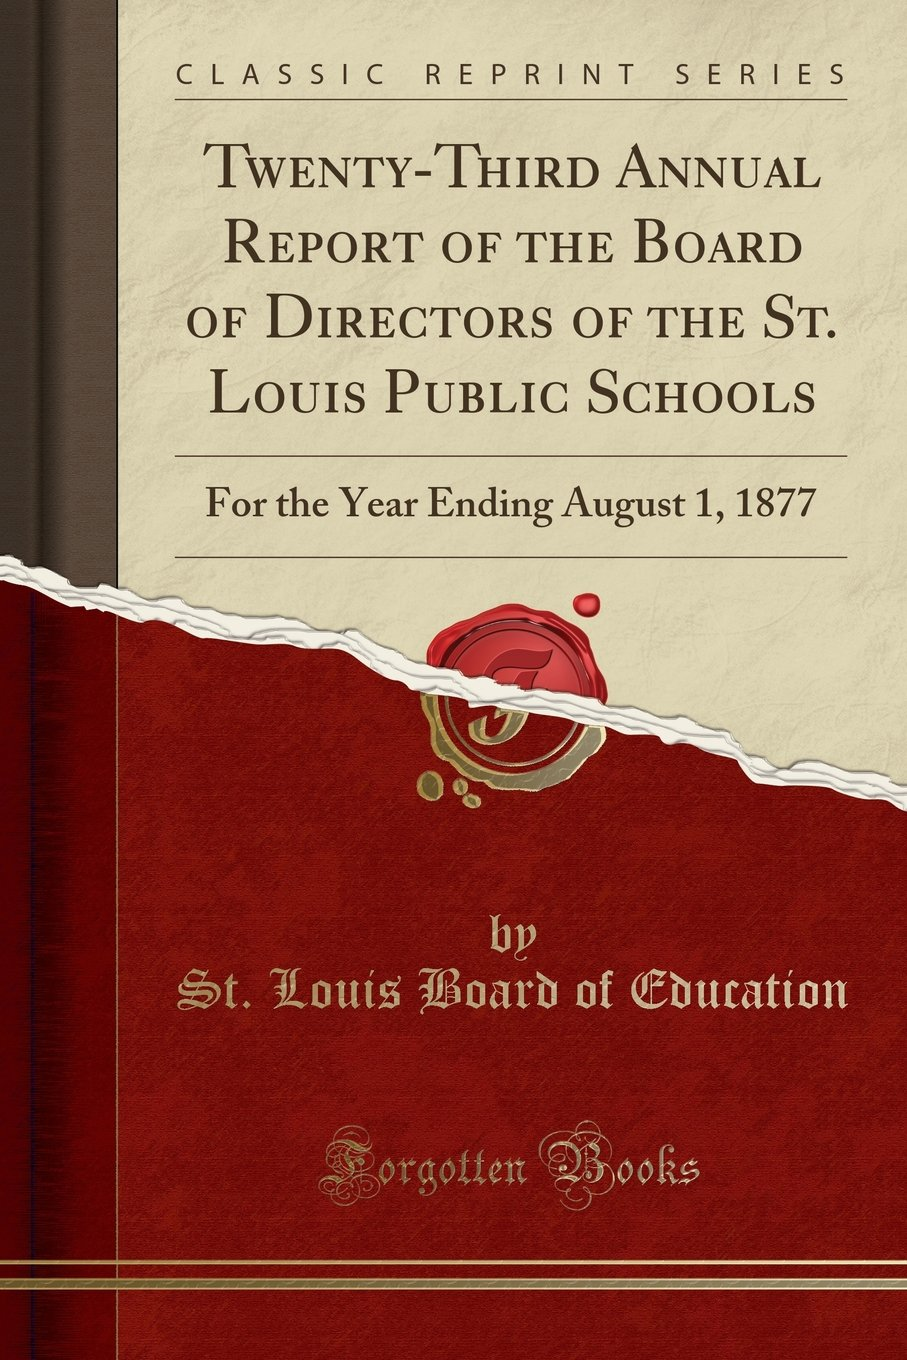 Download Twenty-Third Annual Report of the Board of Directors of the St. Louis Public Schools: For the Year Ending August 1, 1877 (Classic Reprint) ebook